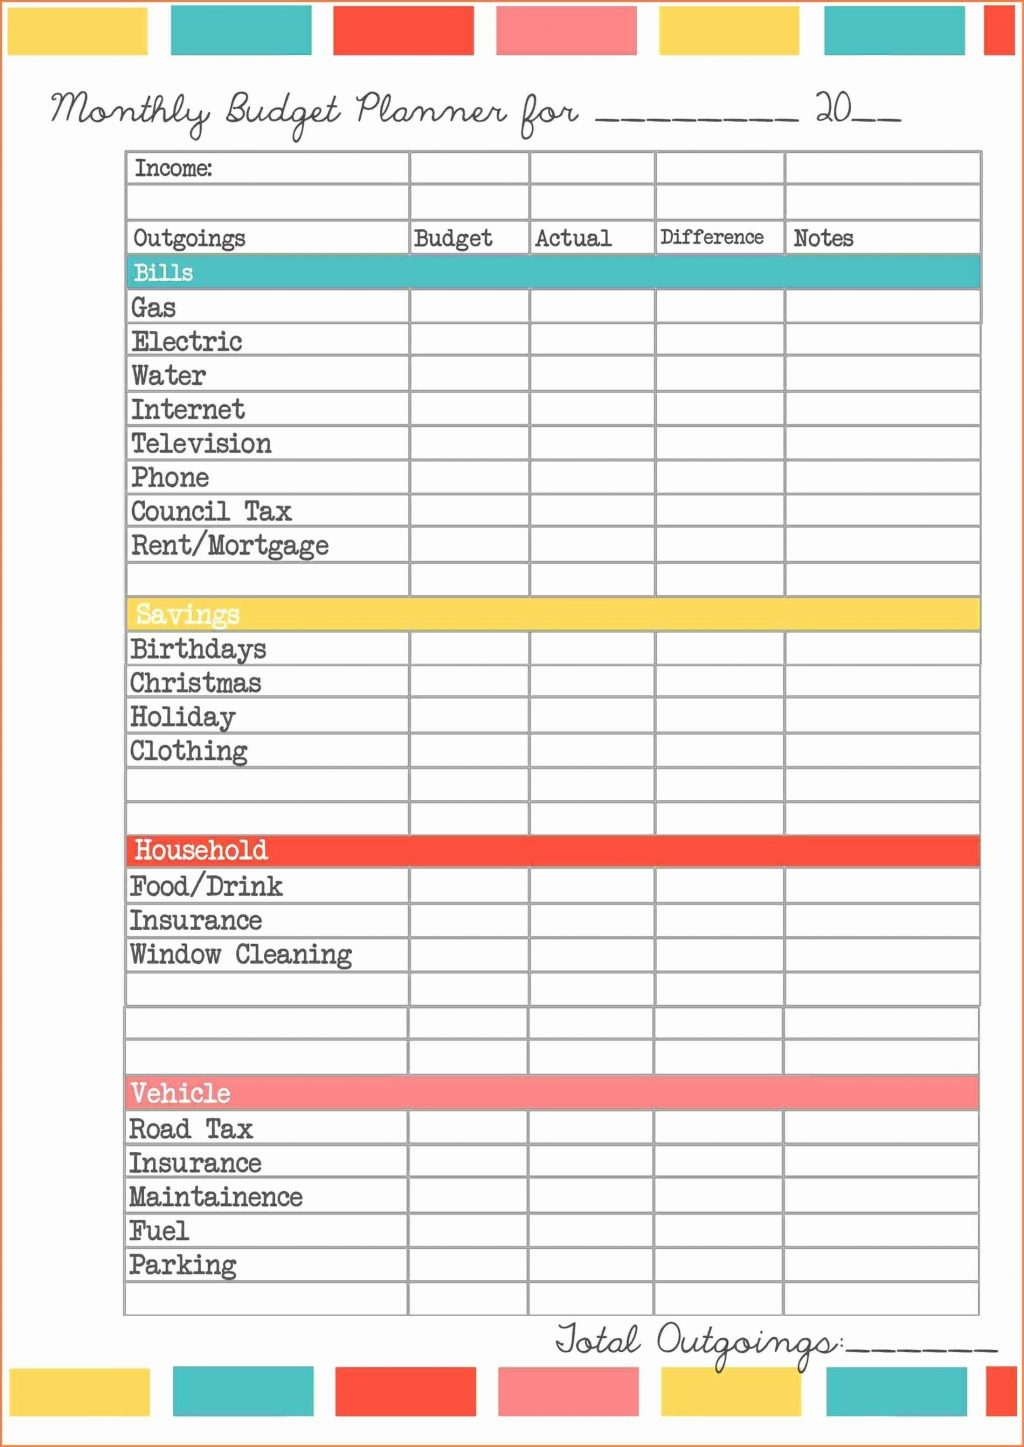 Accounting Spreadsheet Templates For Small Business Free Downloads Within Excel Spreadsheet Templates For Small Business